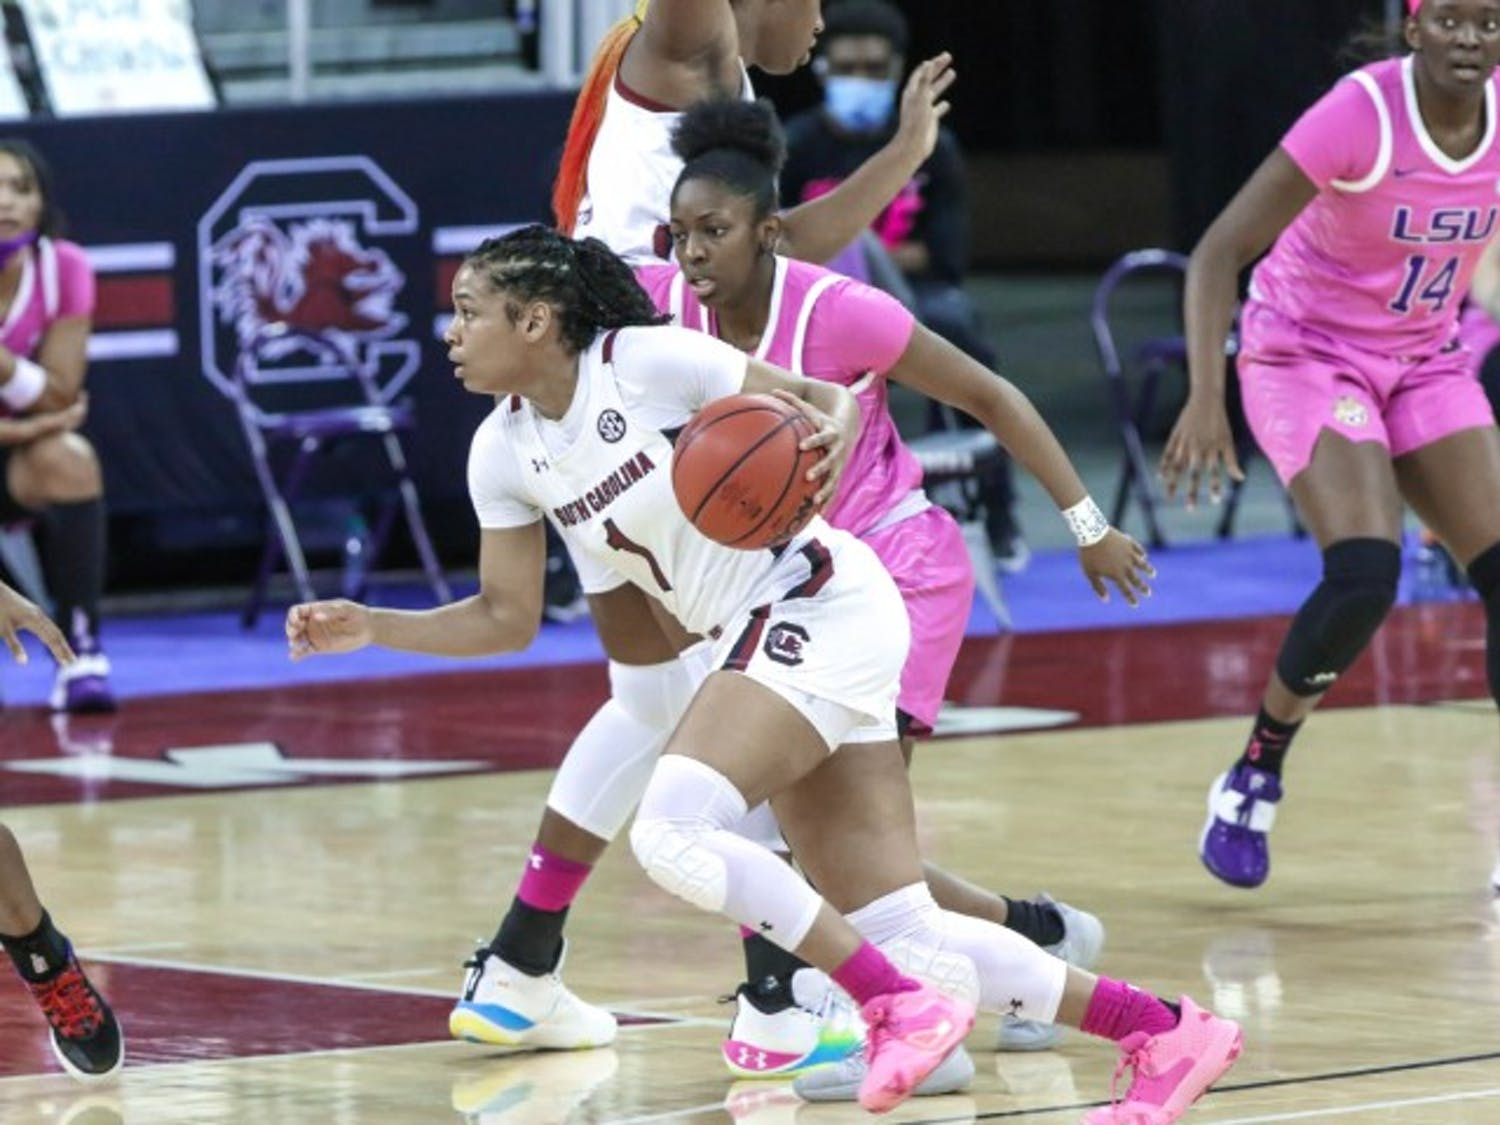 Sophomore guard Zia Cooke dribbles past a defender in South Carolina's win over LSU. The Gamecocks improved to 17-2 following the win.